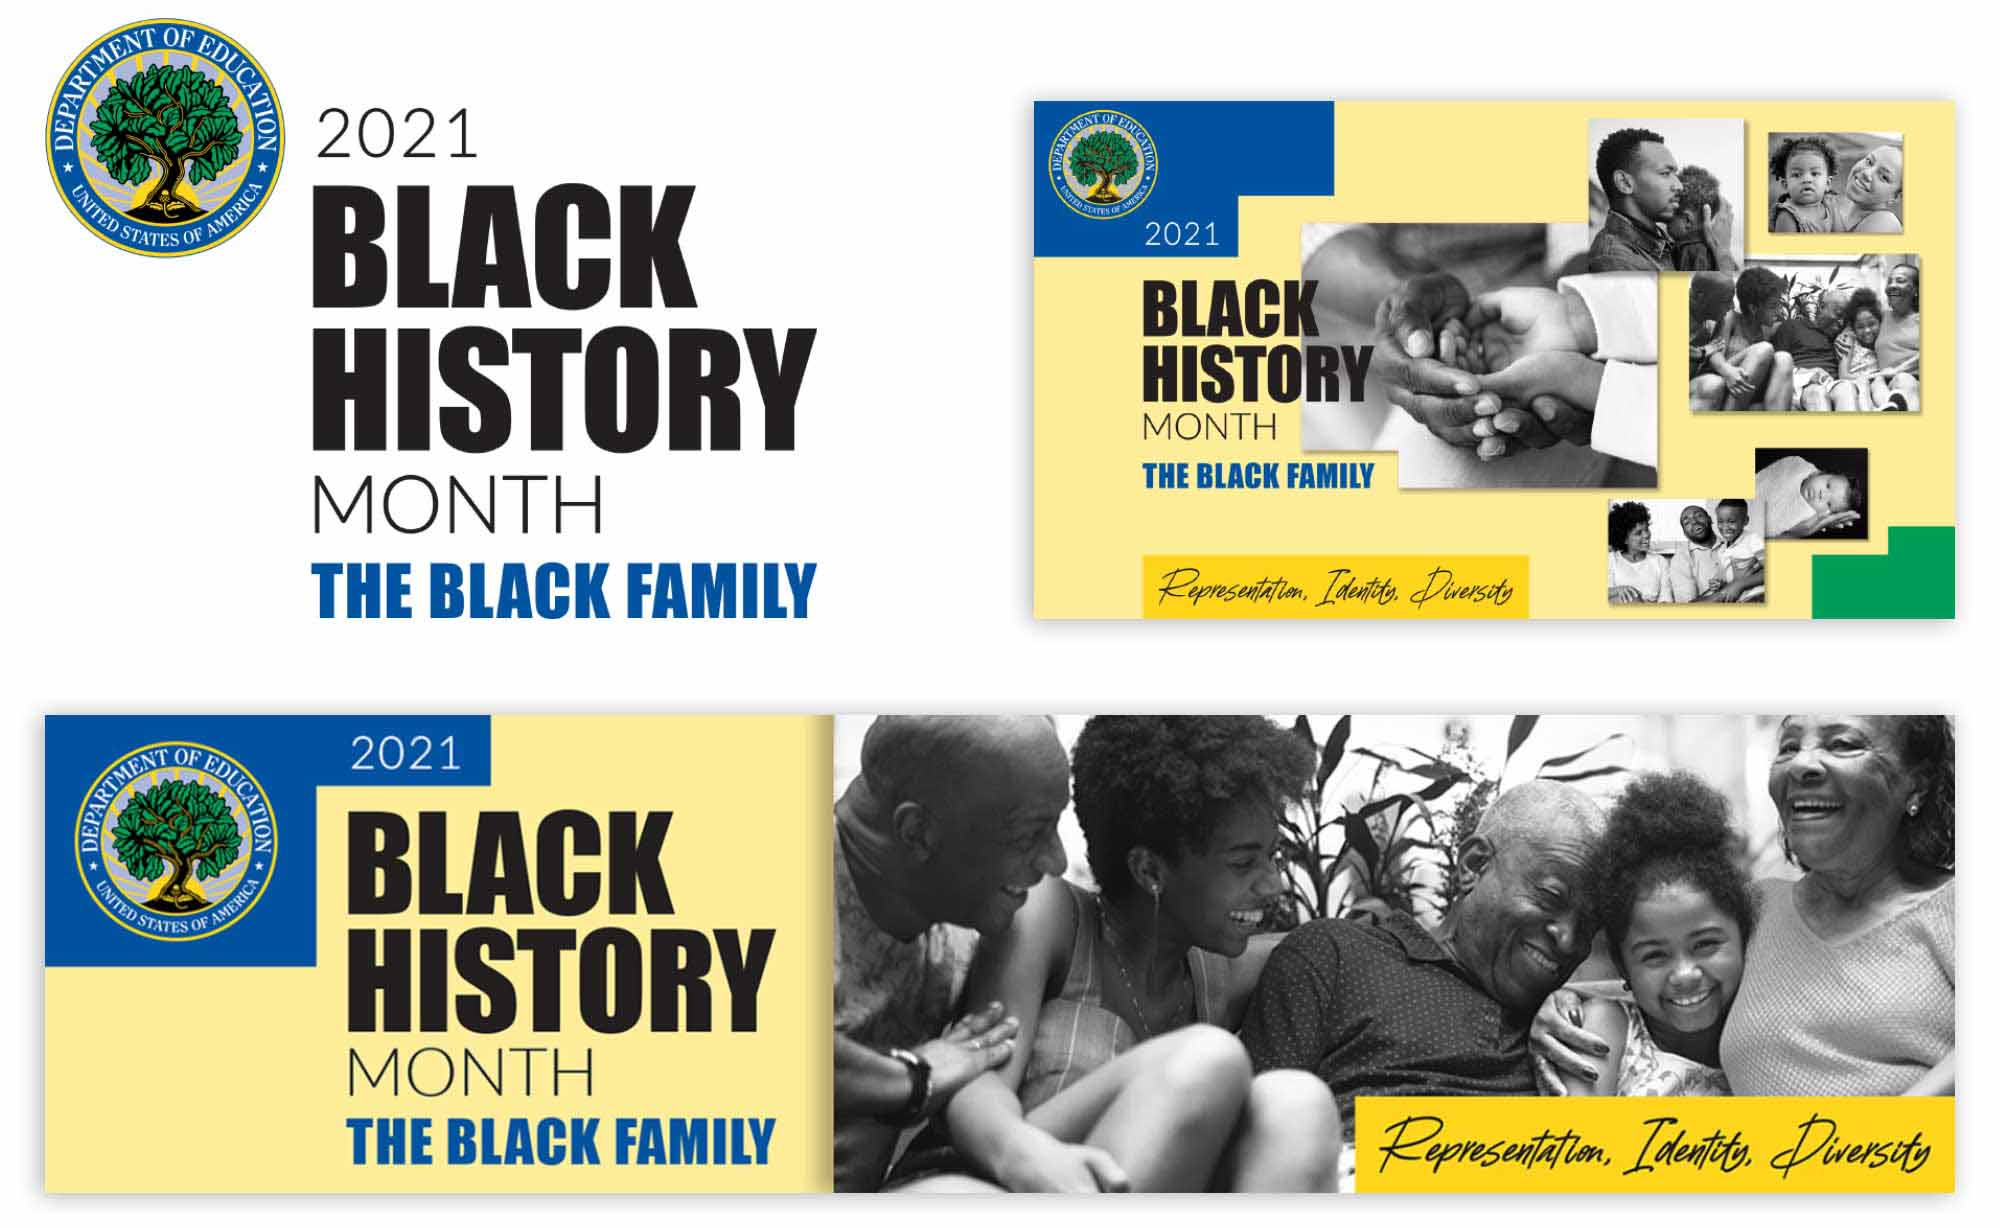 Black History Month Festival: Design and development of event identity and graphics including web banners and presentation